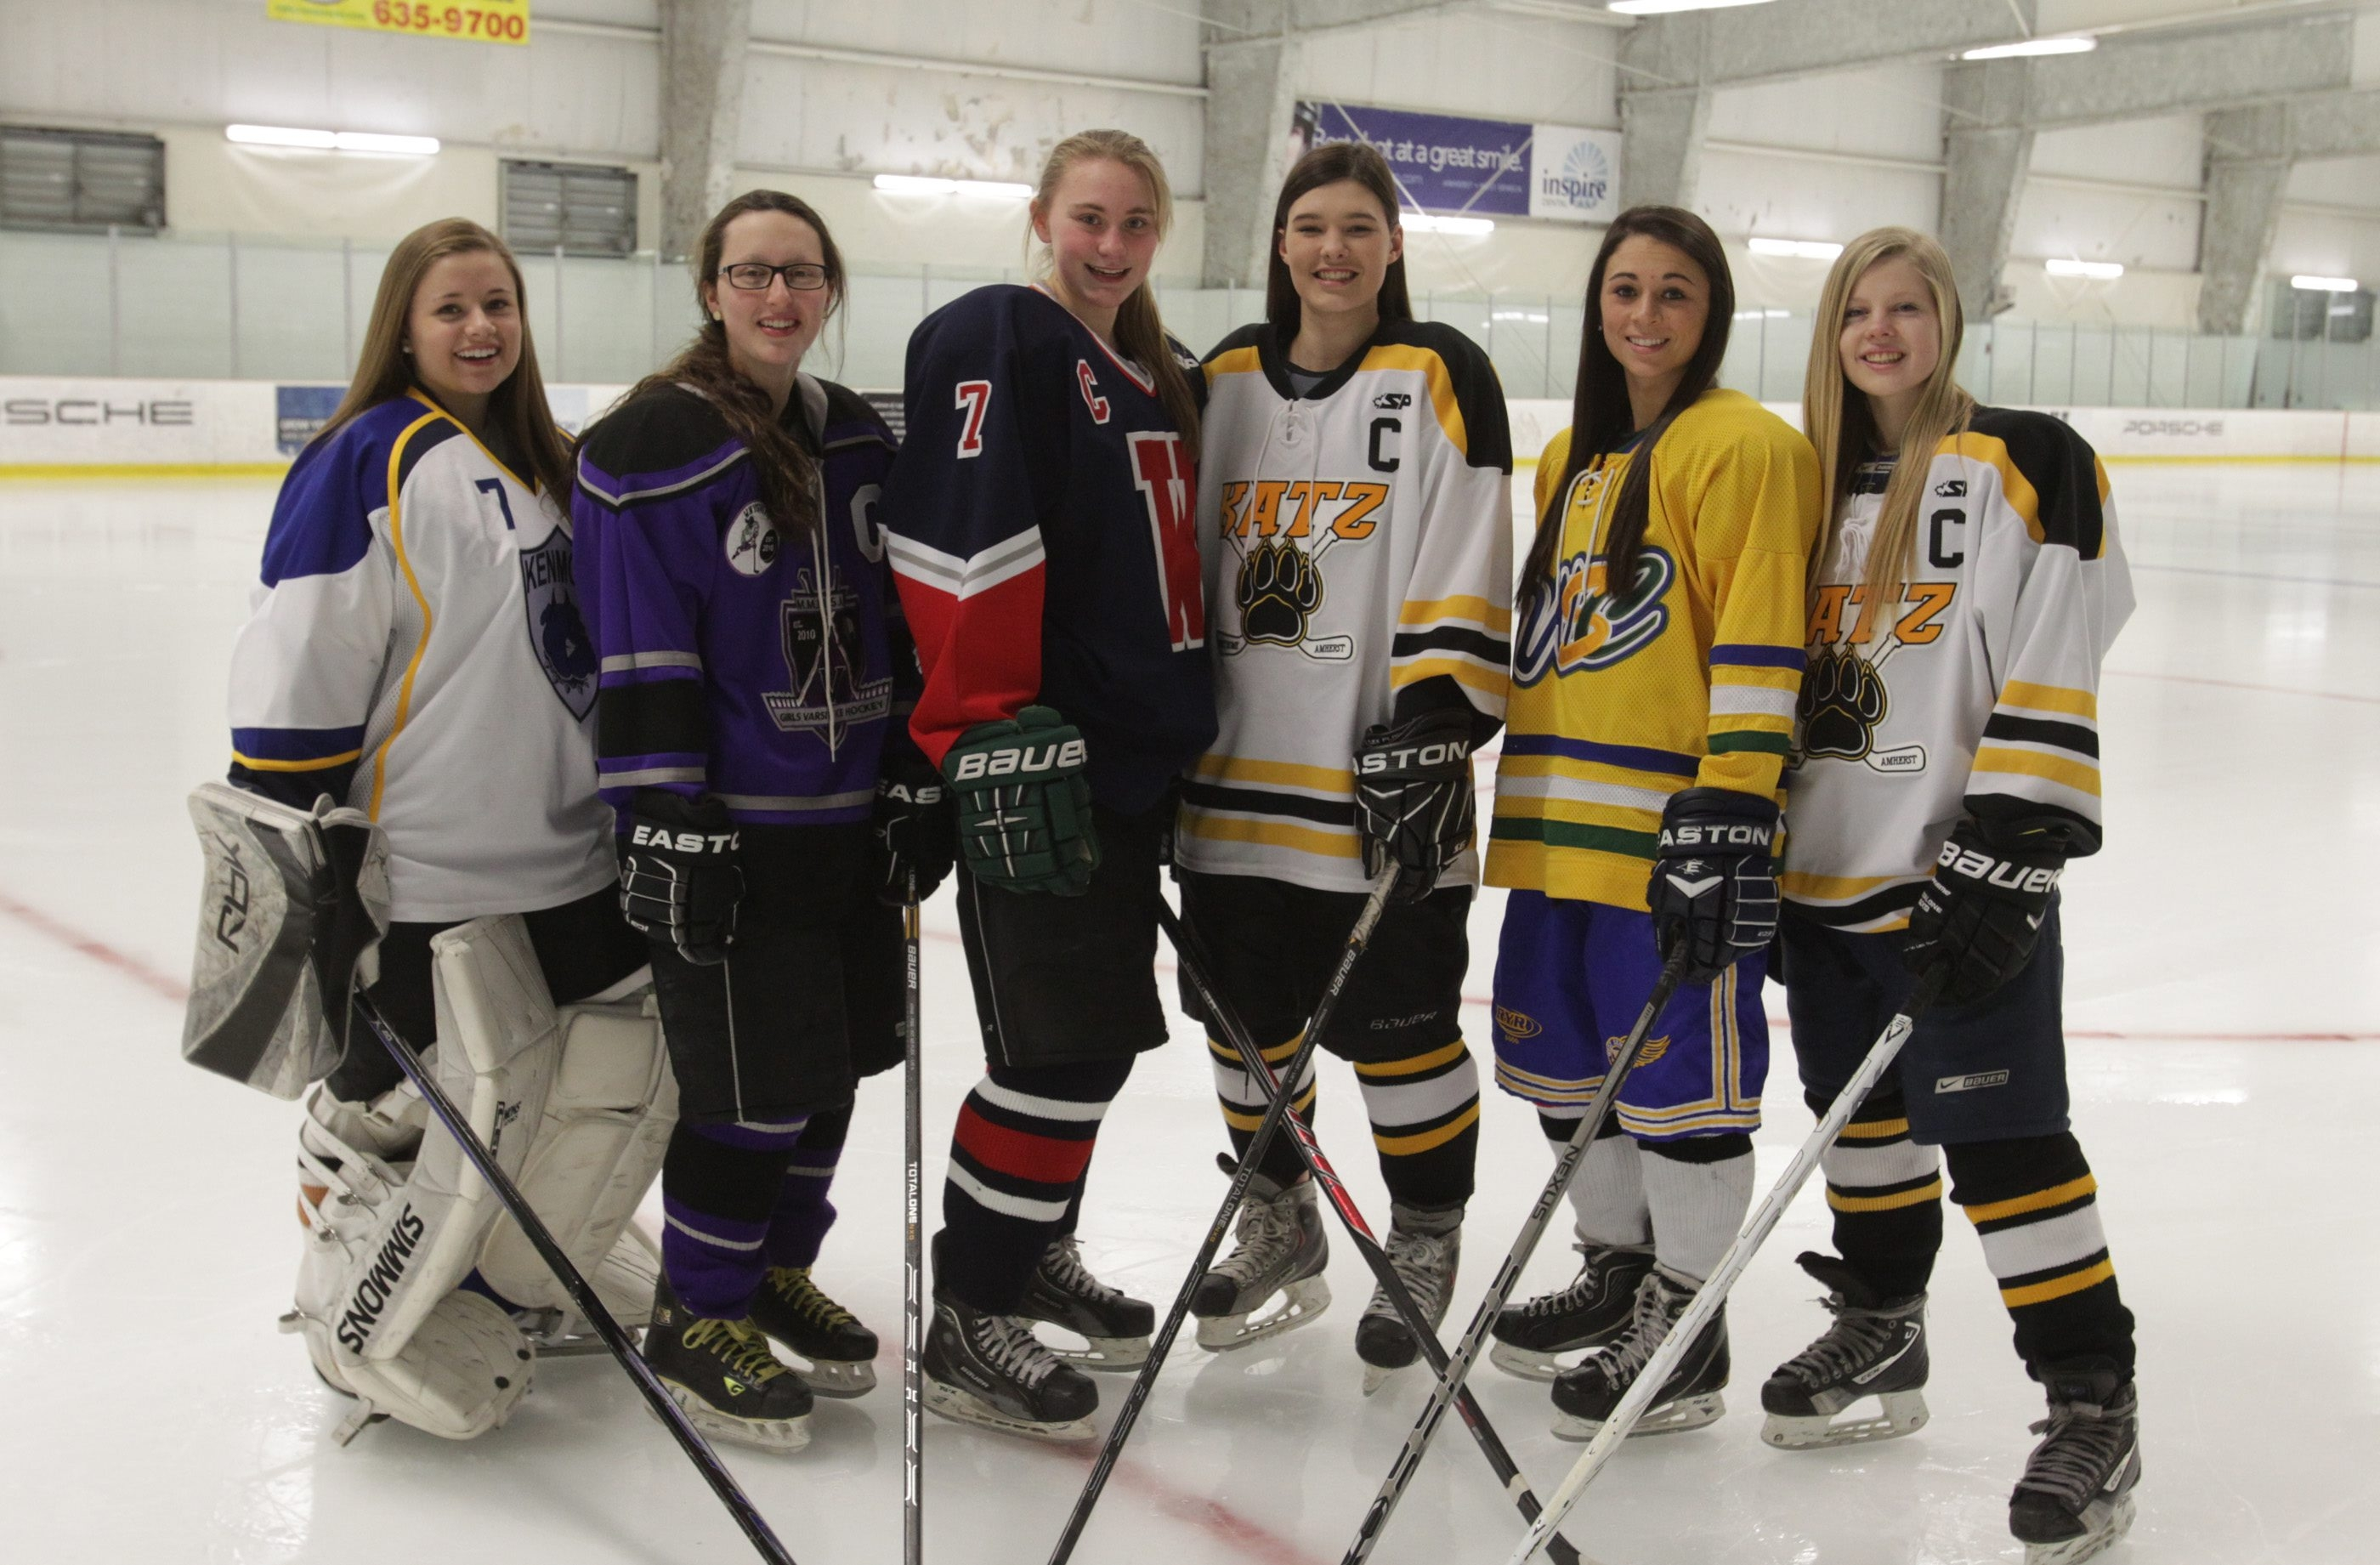 All-WNY: Lauren Pray (Kenmore), Rachel Lenard (Monsignor Martin Association), Rachel Grampp (Williamsville), Maddy Grisko (Amherst/Sweet Home), Erin Gehen (West Seneca), Missy Mallon (Amherst/Sweet Home).